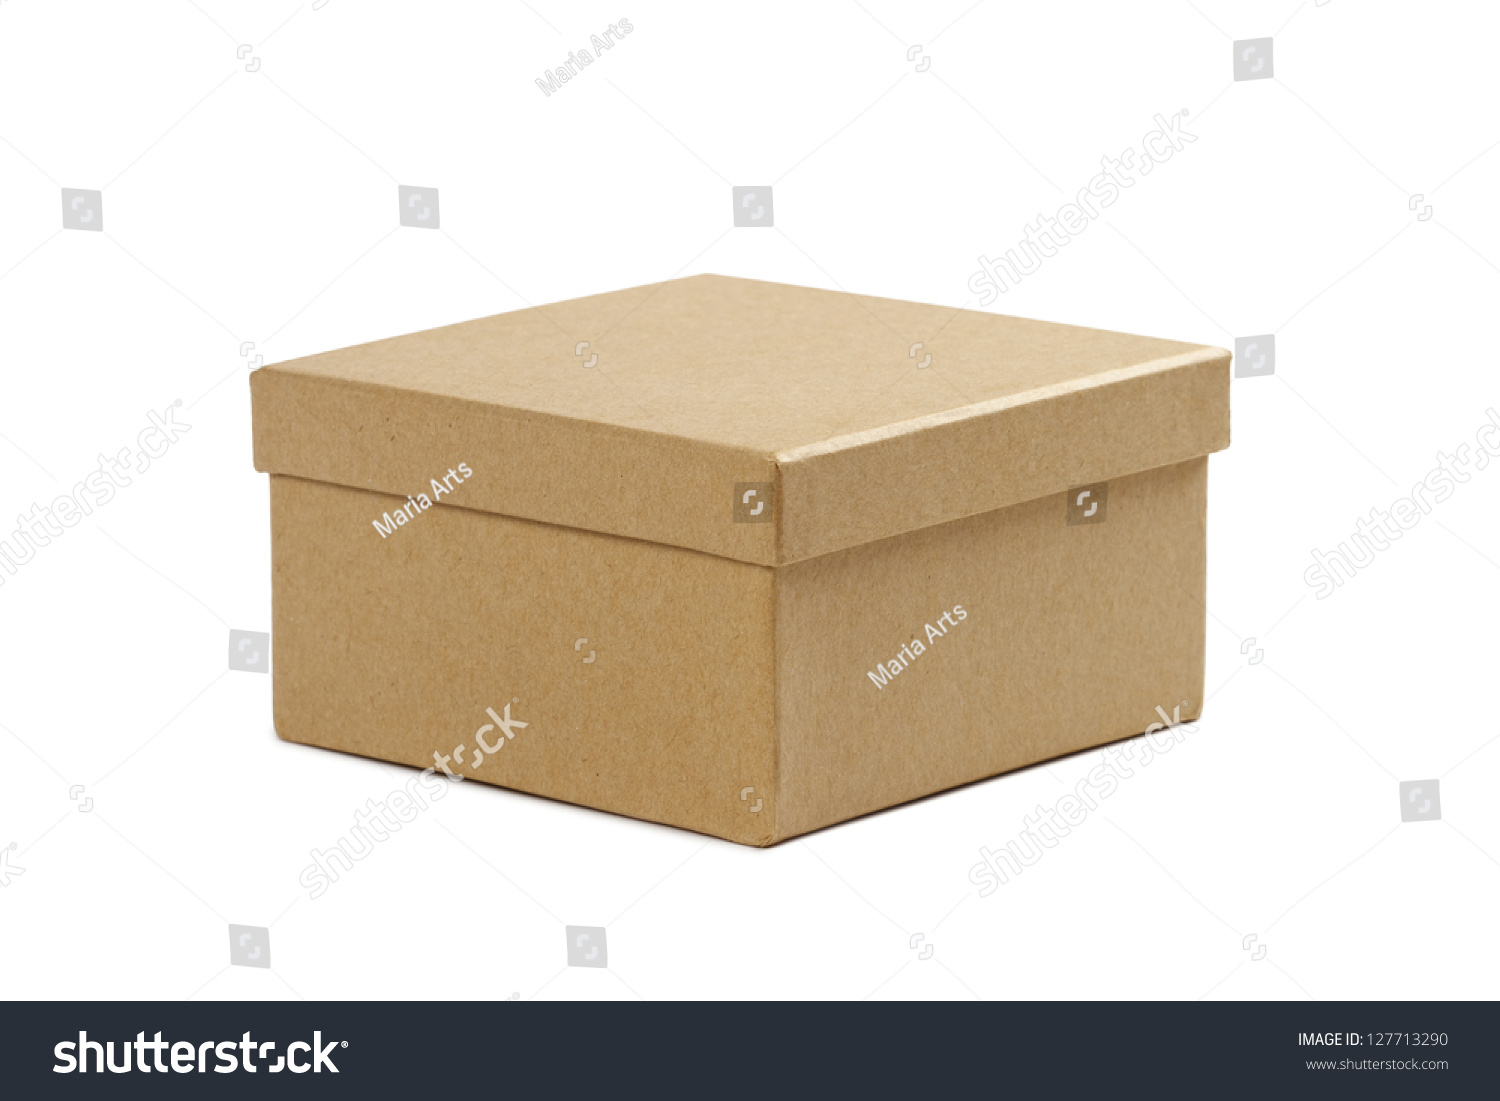 closed white cardboard box. closed cardboard box with lid on white background